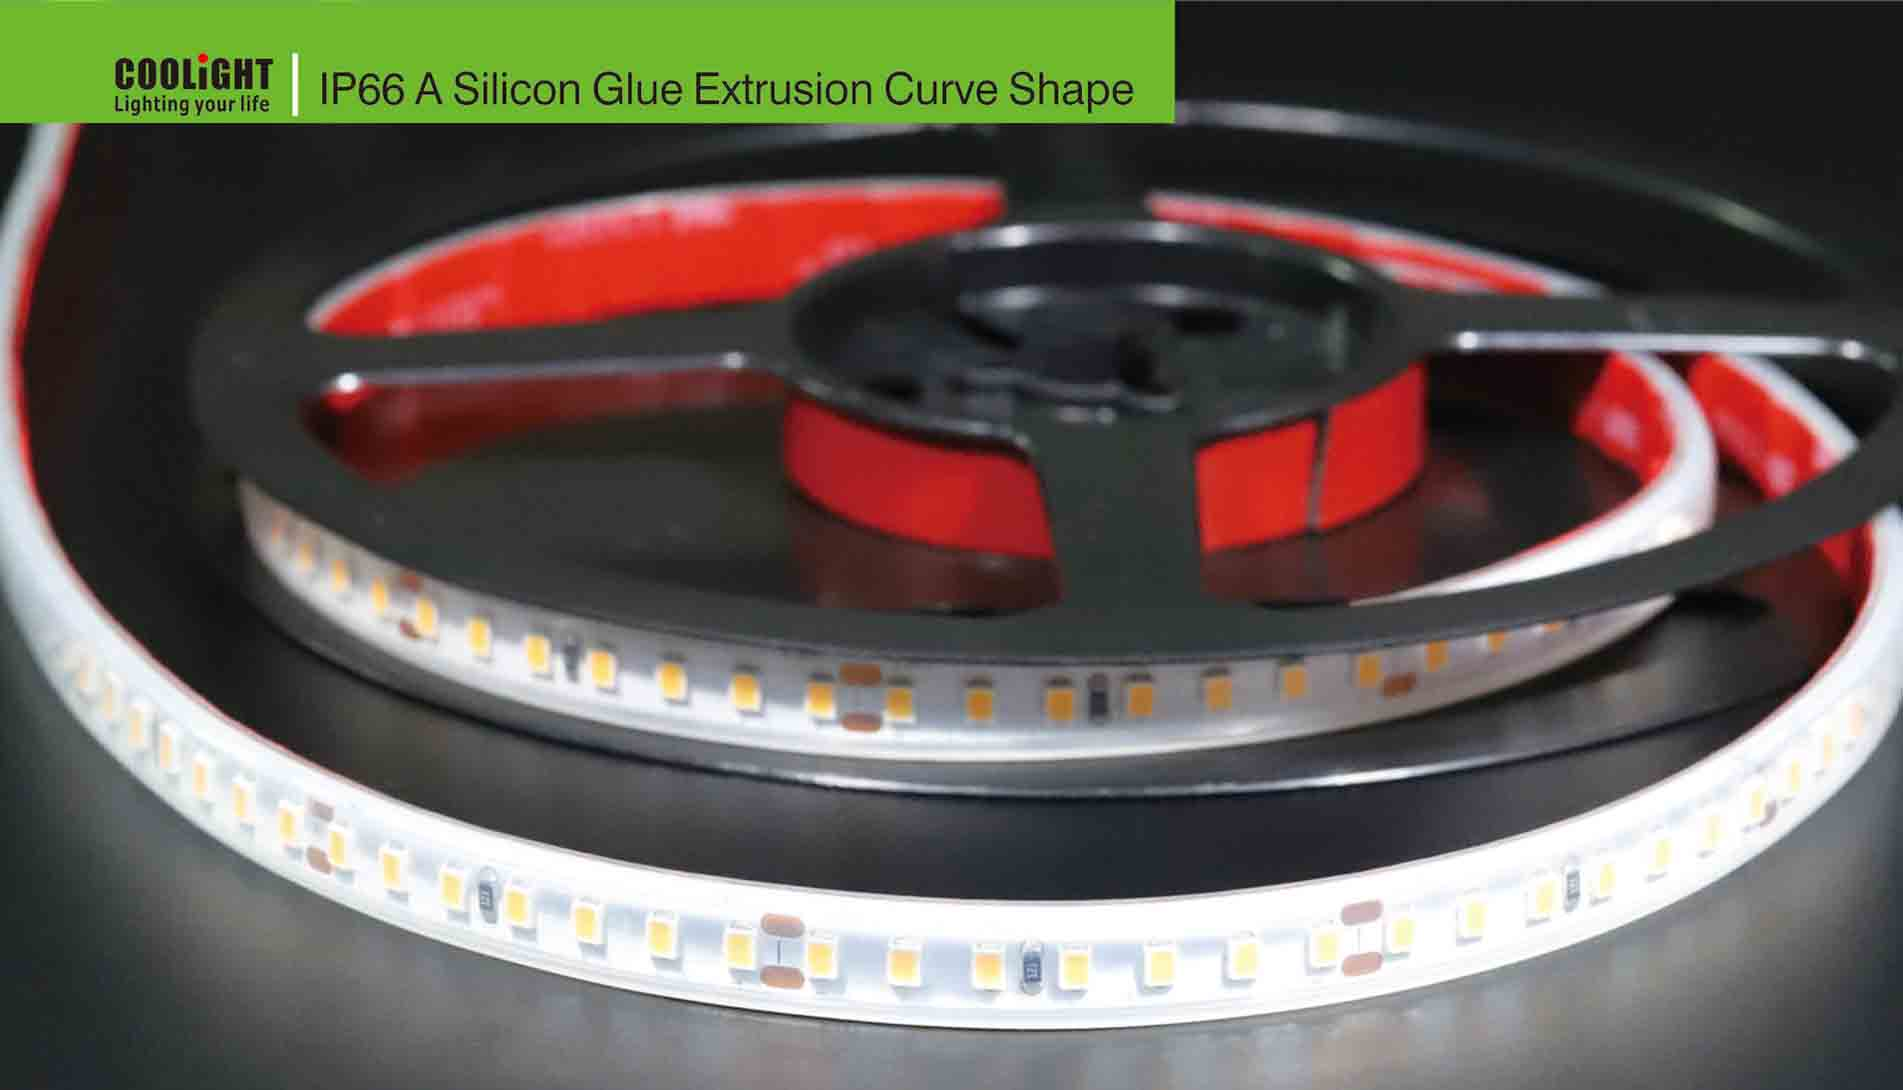 ip66 a silicon glue extrusion curve shape